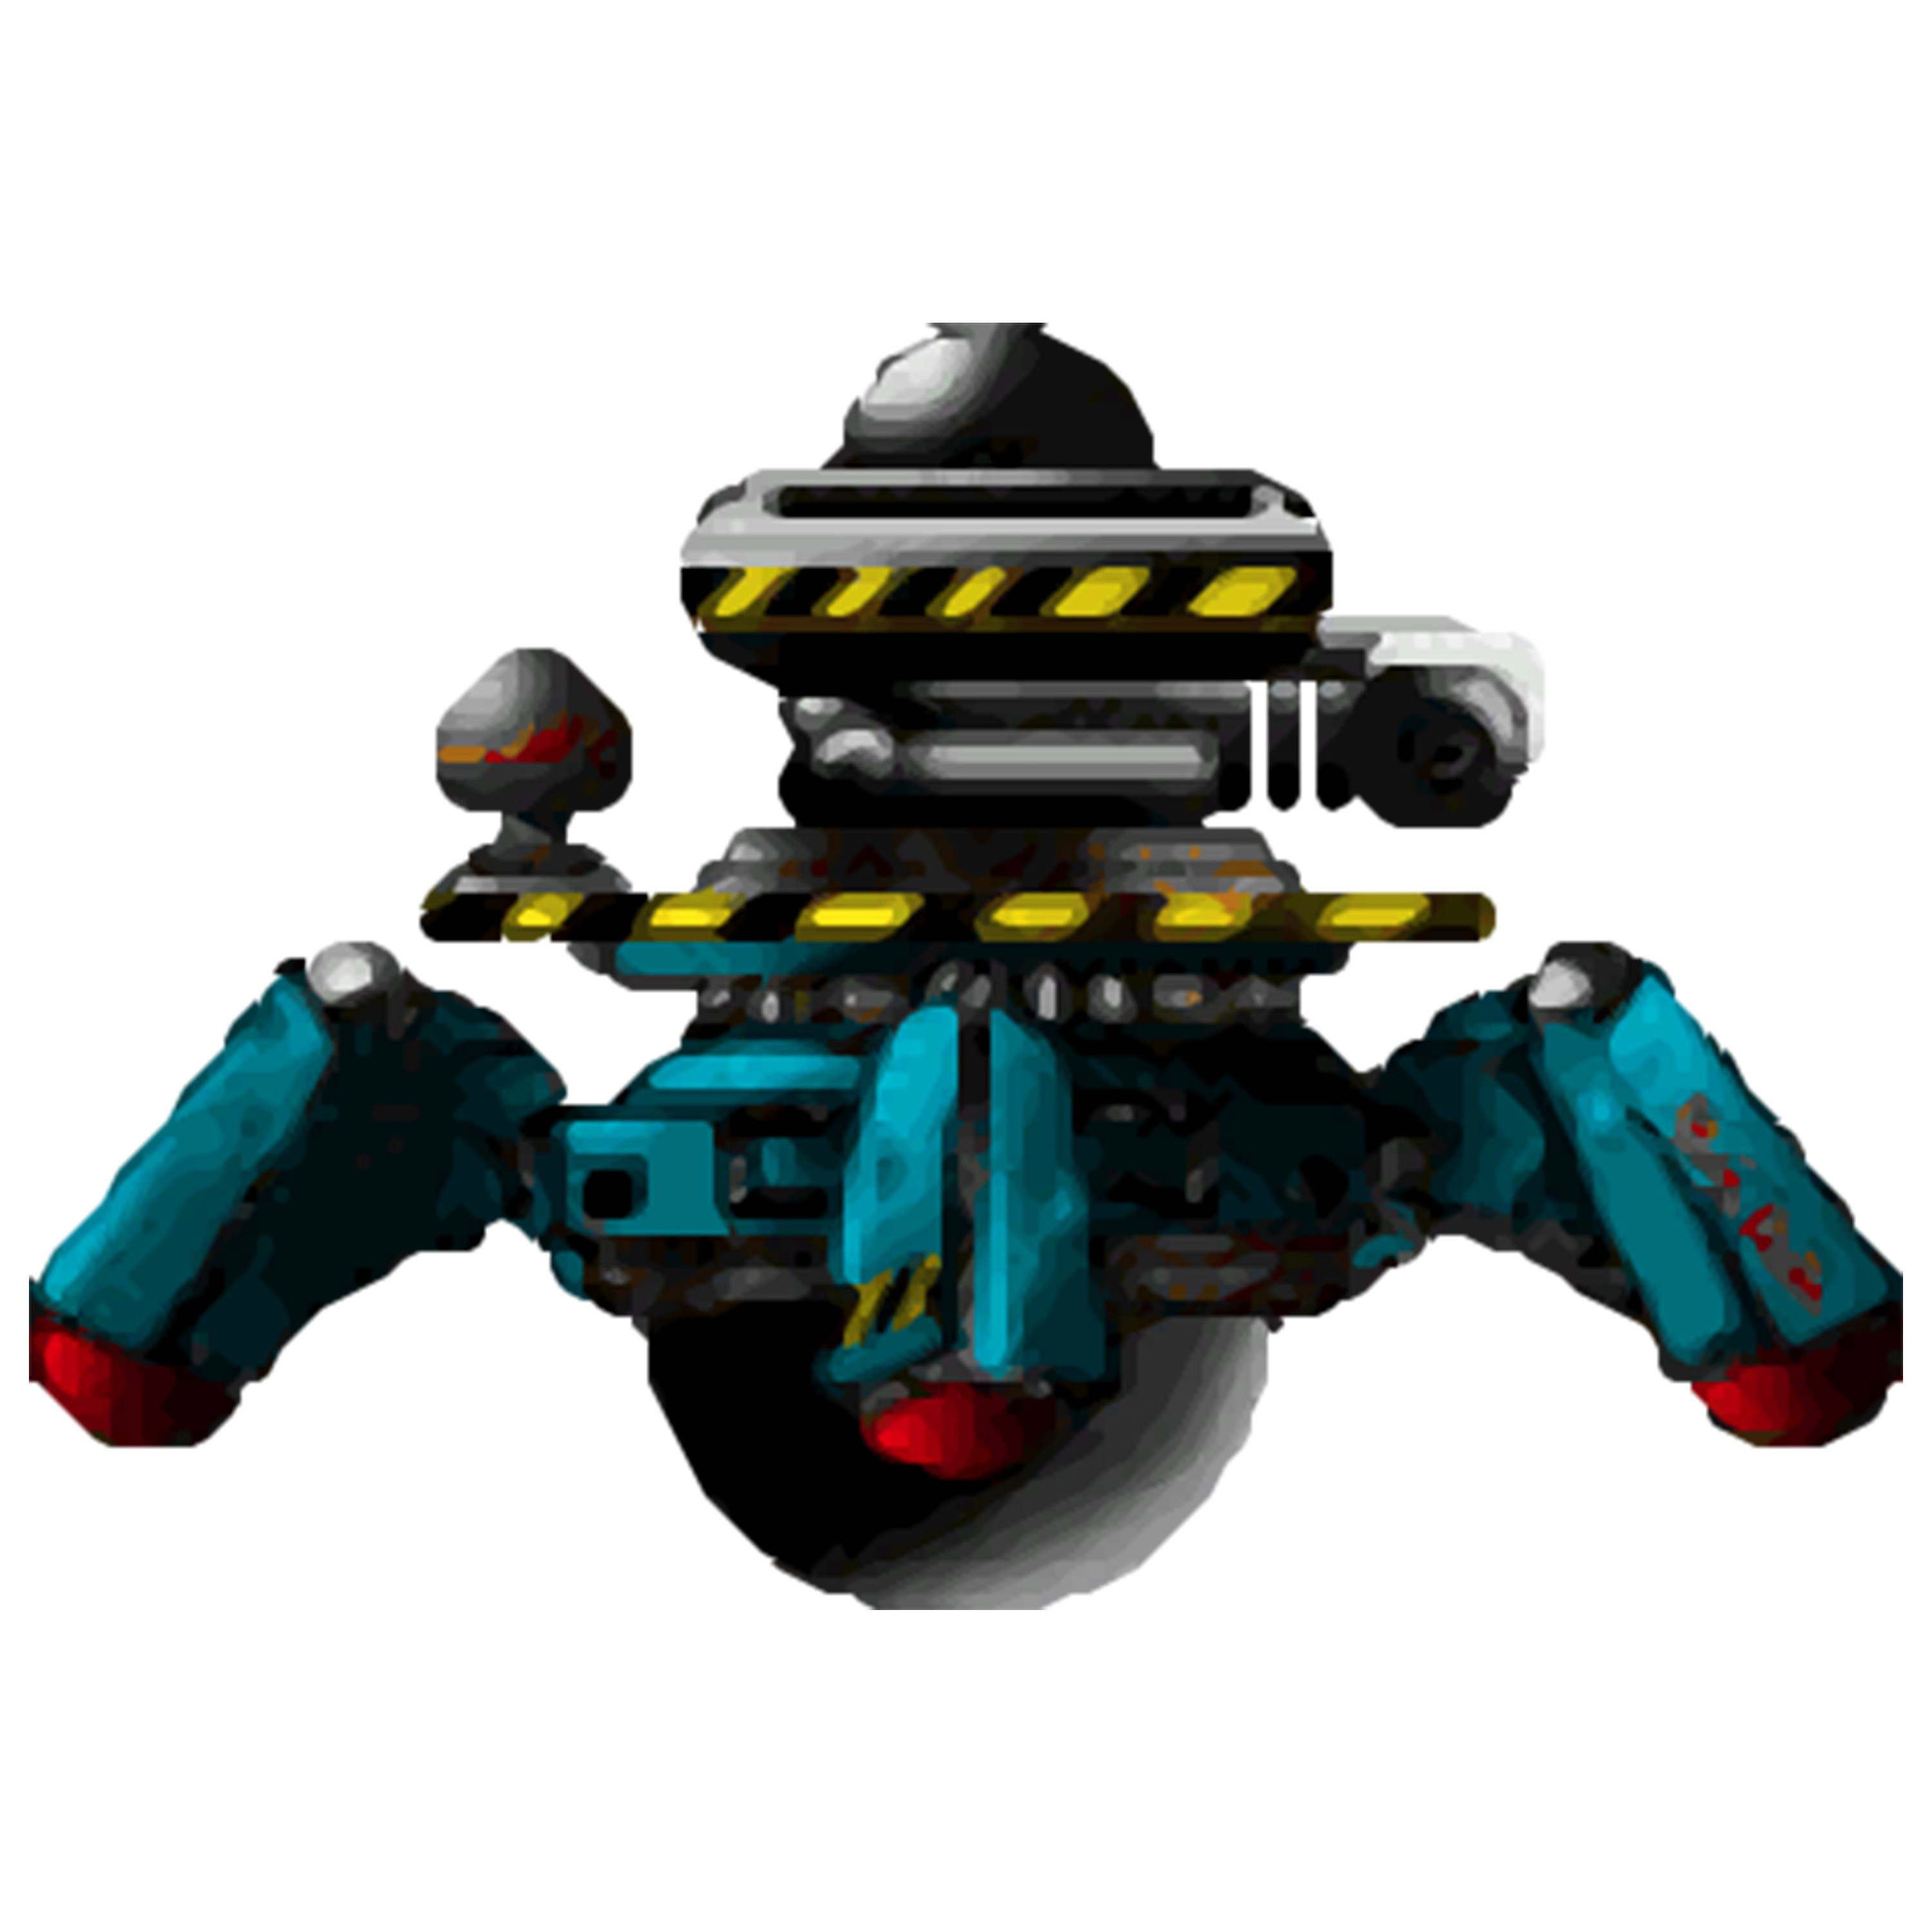 Sprite from the game